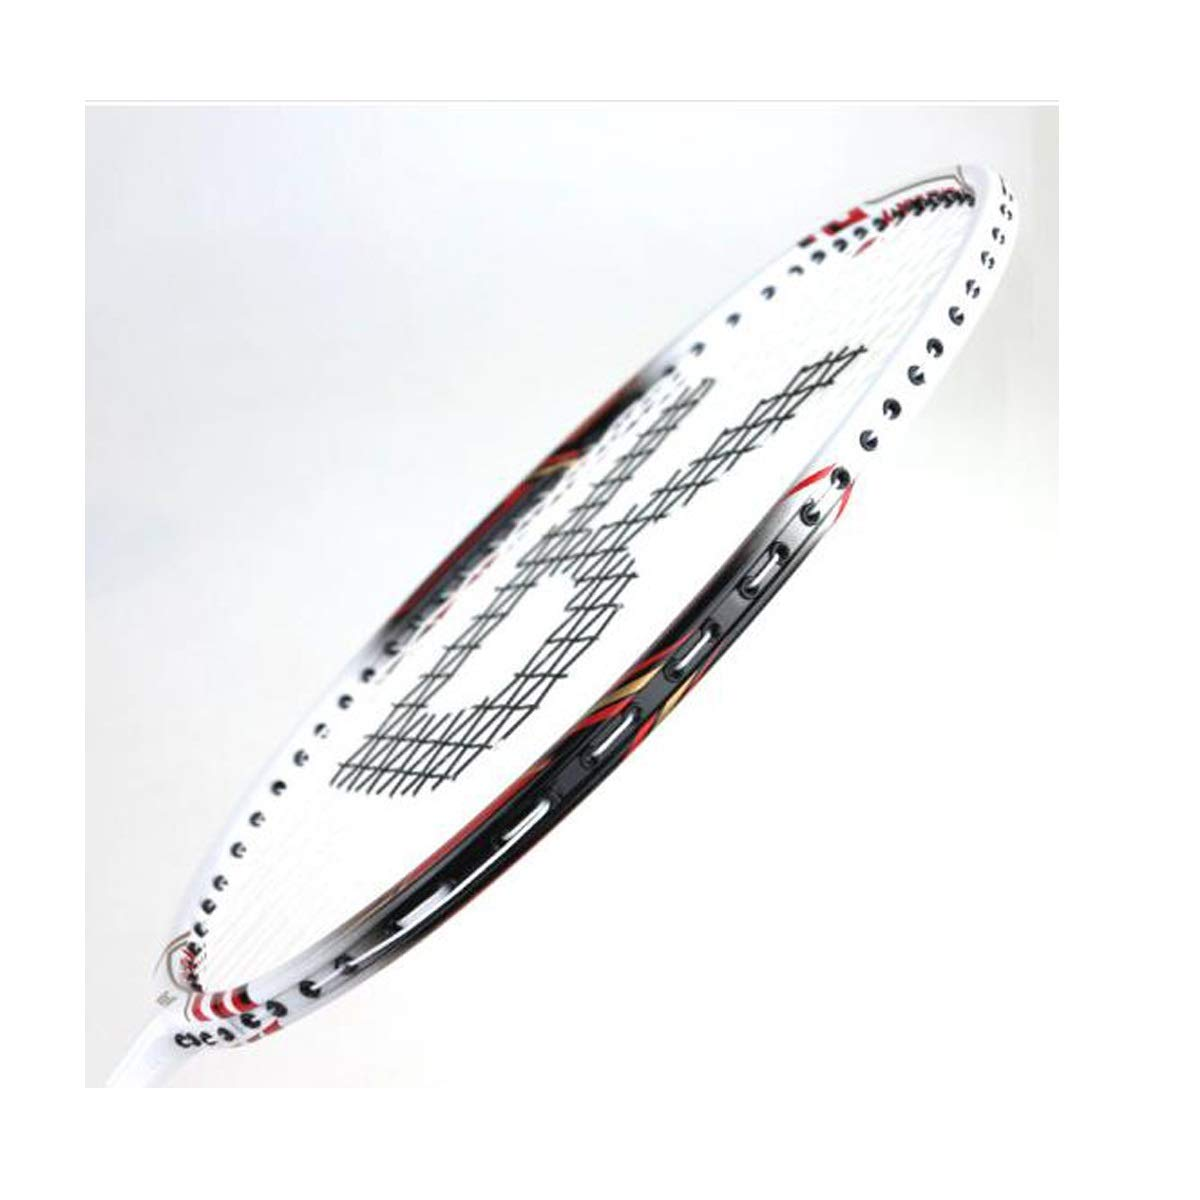 Tongboshi Full Carbon Badminton Racket, On The Beat, 2 Double Shot Set Ultra Light Beginner, Competition, Training, White, Yellow, White + Yellow (has Threaded) Badminton Racket, (Color : Yellow) by Tongboshi (Image #5)